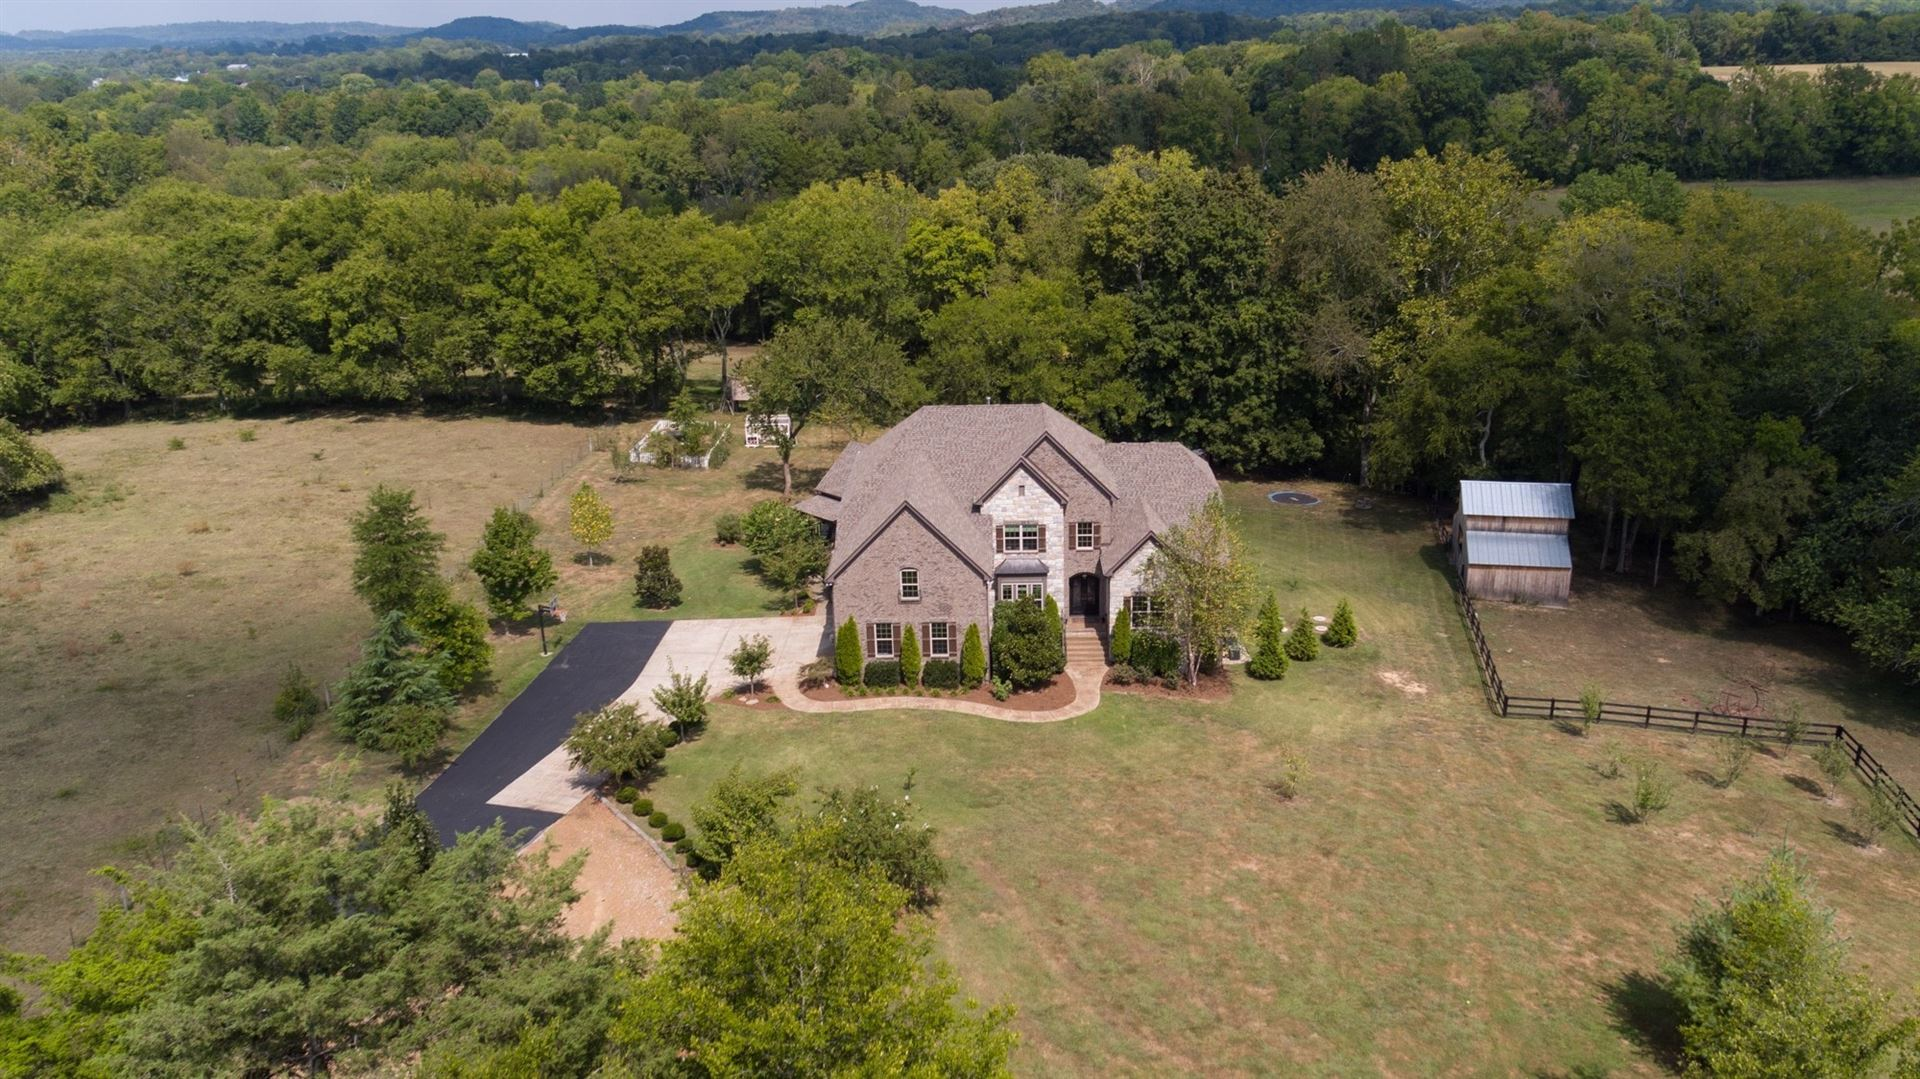 4630 Bethesda Rd, Thompsons Station, TN 37179 - MLS#: 2200618